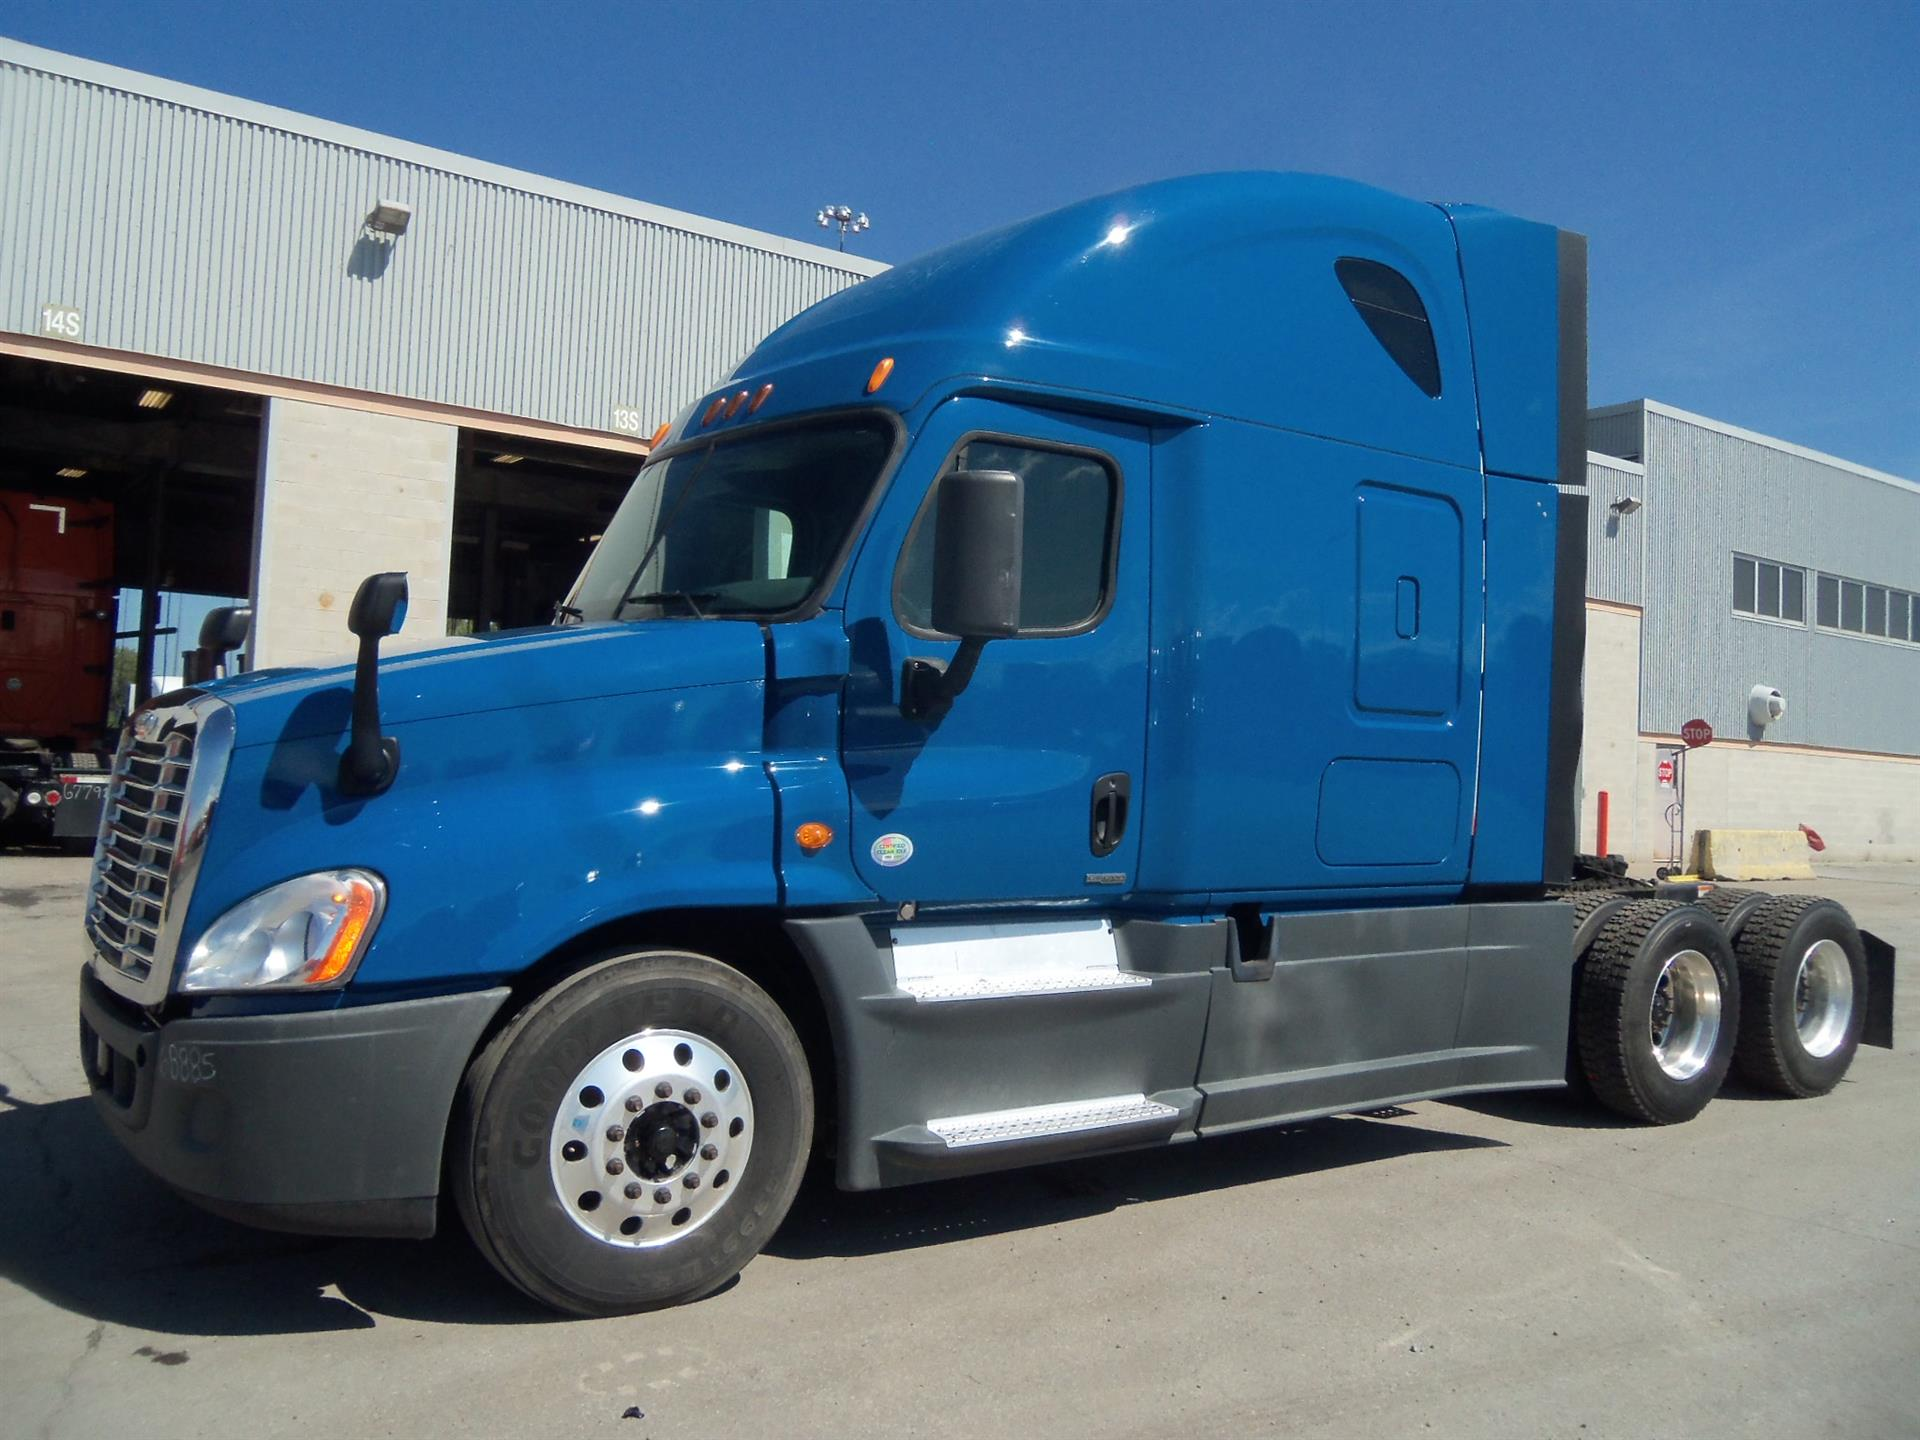 USED 2014 FREIGHTLINER CASCADIA SLEEPER TRUCK #82107